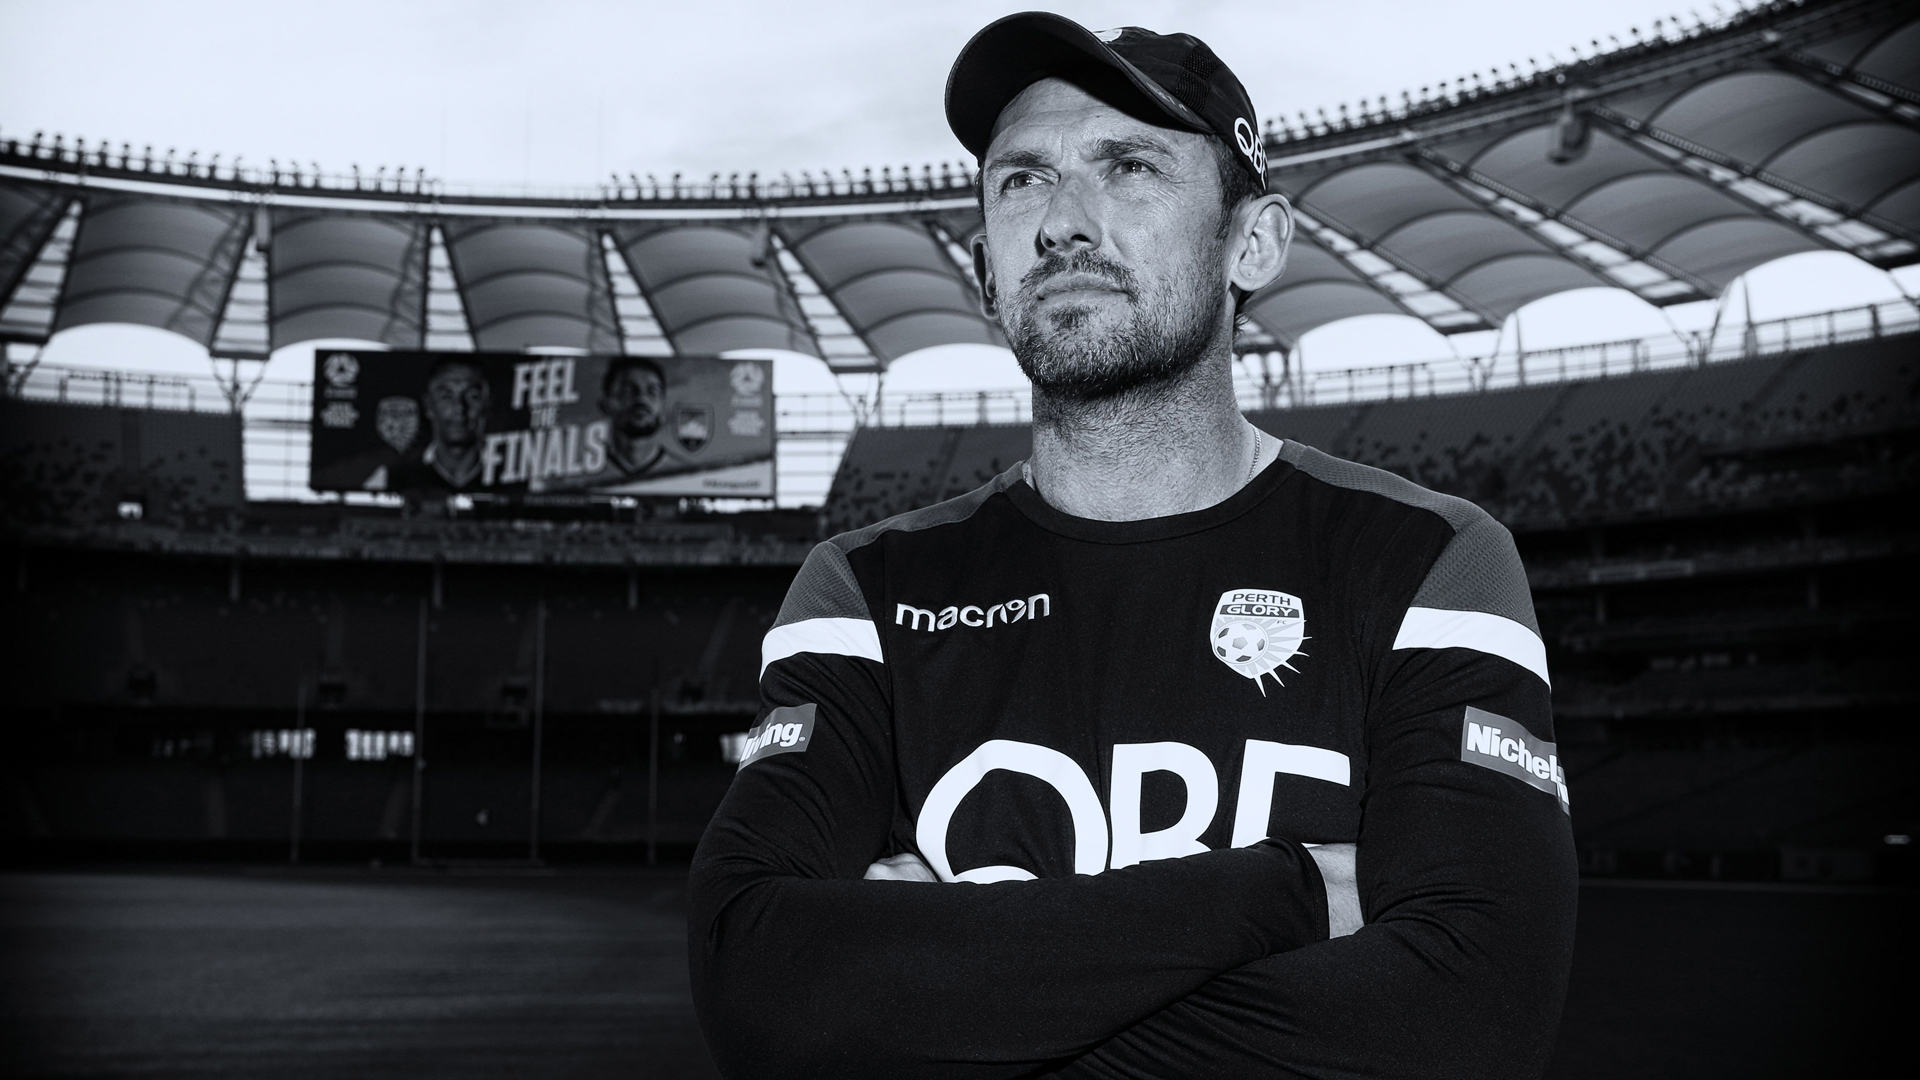 Perth Glory v Sydney FC: Popovic's chance to end Grand Final hoodoo